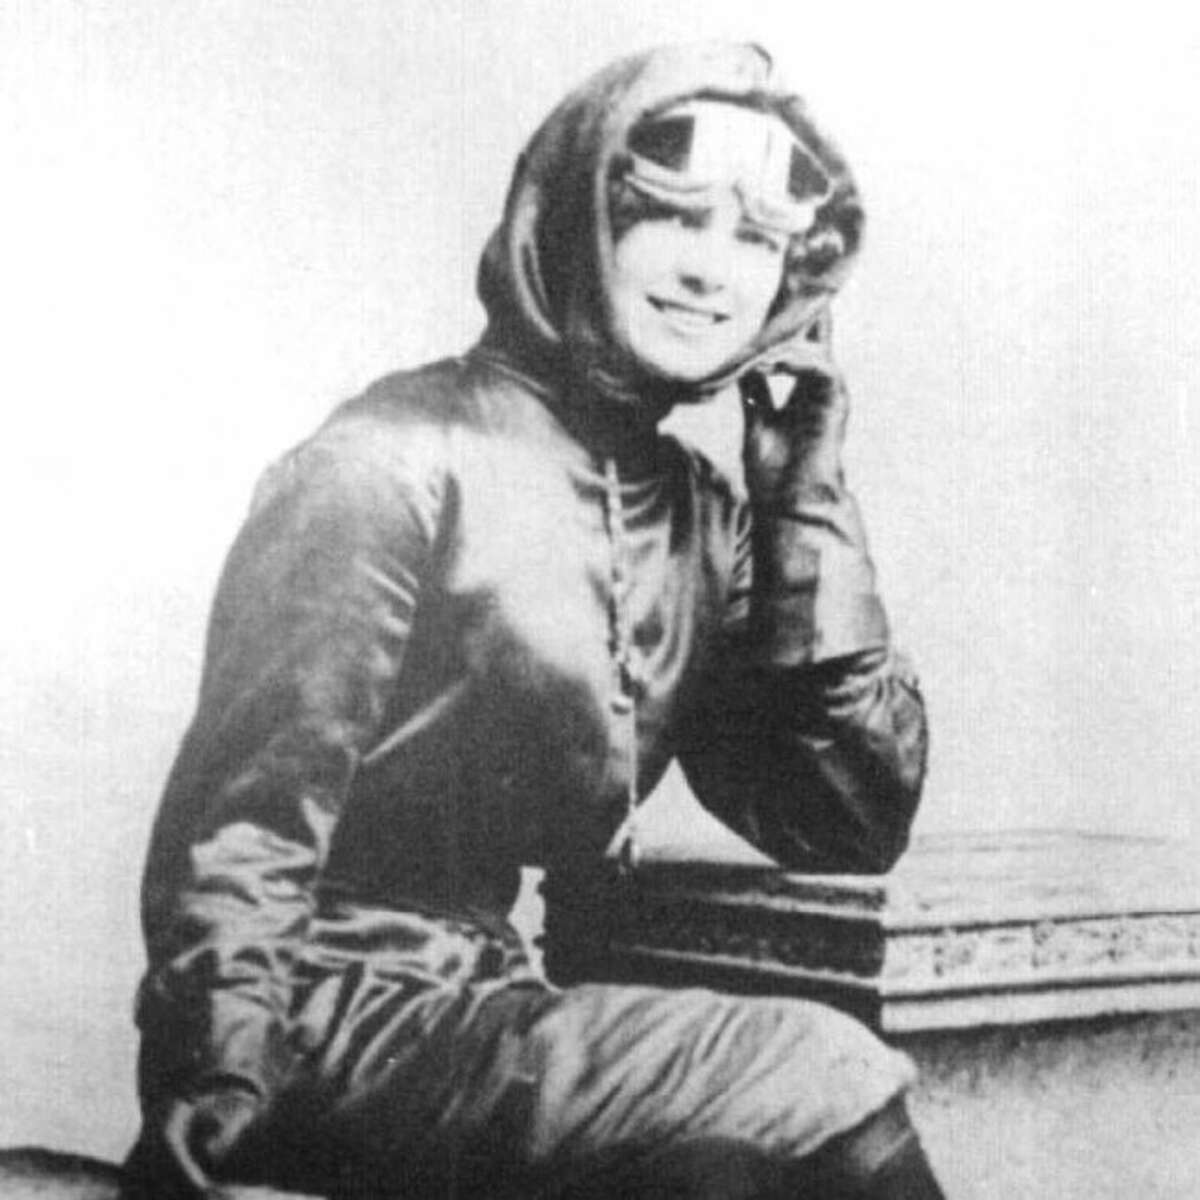 Harriet Quimby was the first lady of flight and came from the Aradia area in Manistee County.